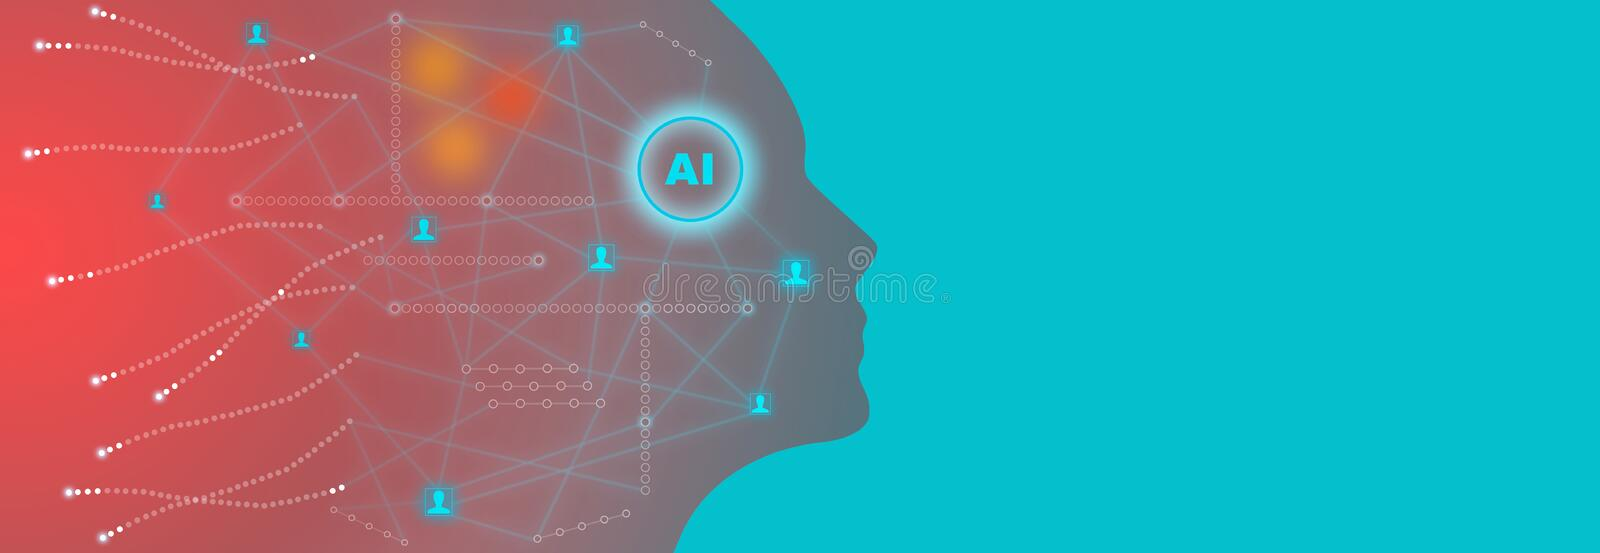 Artificial intelligence technology concept with background illustration of human face made by tiny glowing neural connections stock illustration